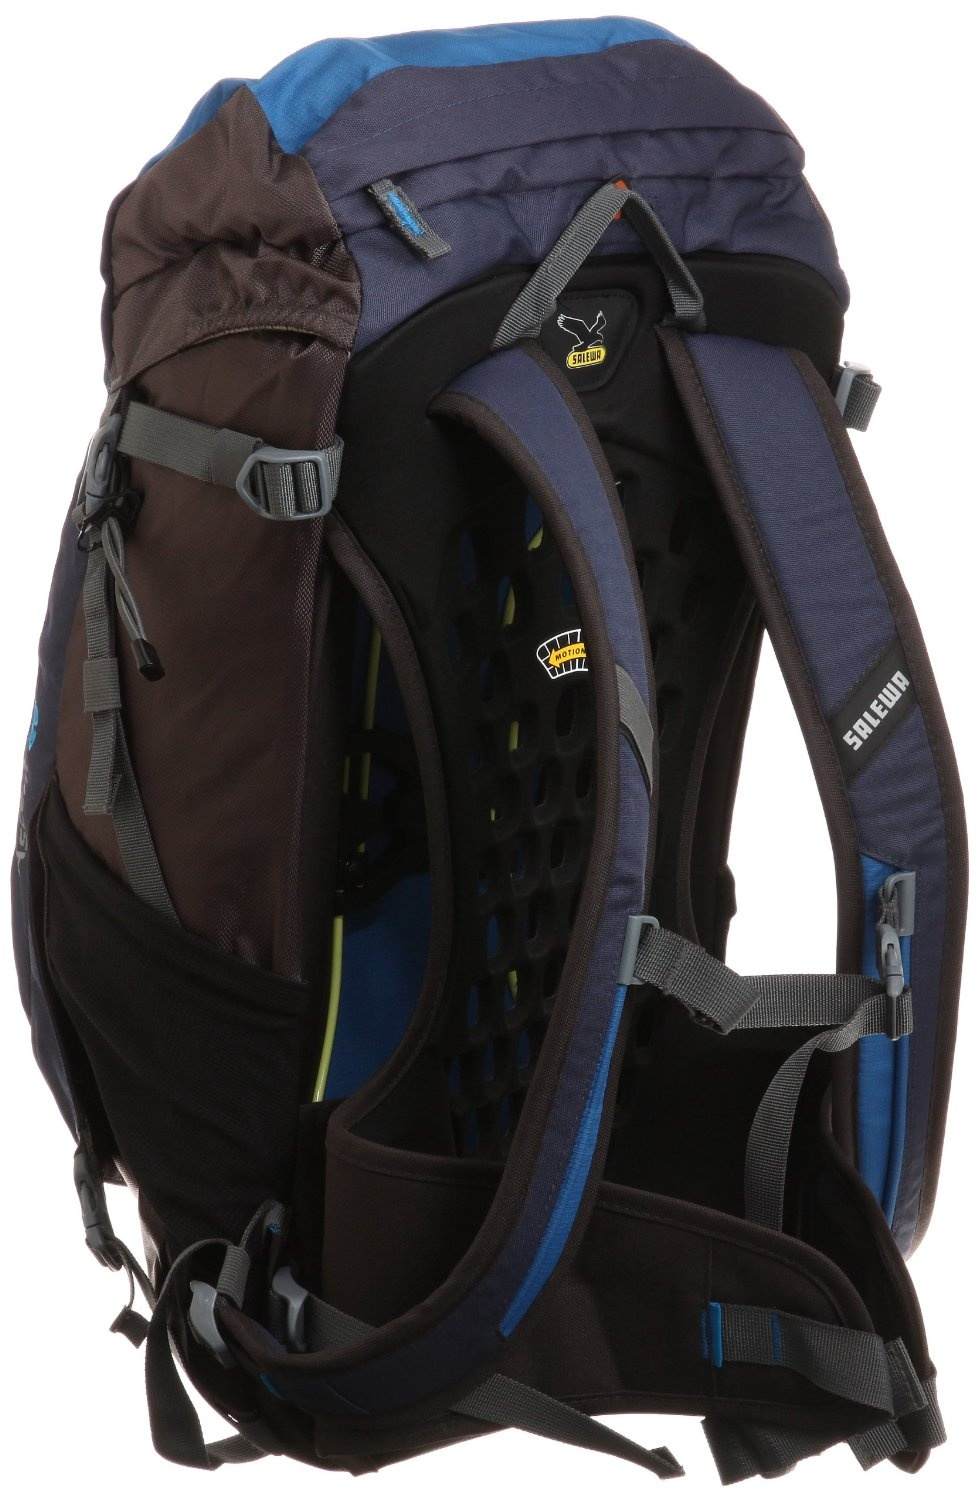 3bc5b9e4baf9 Salewa Hiking Backpack Sports   Outdoors  Buy Online from Fishpond.co.nz